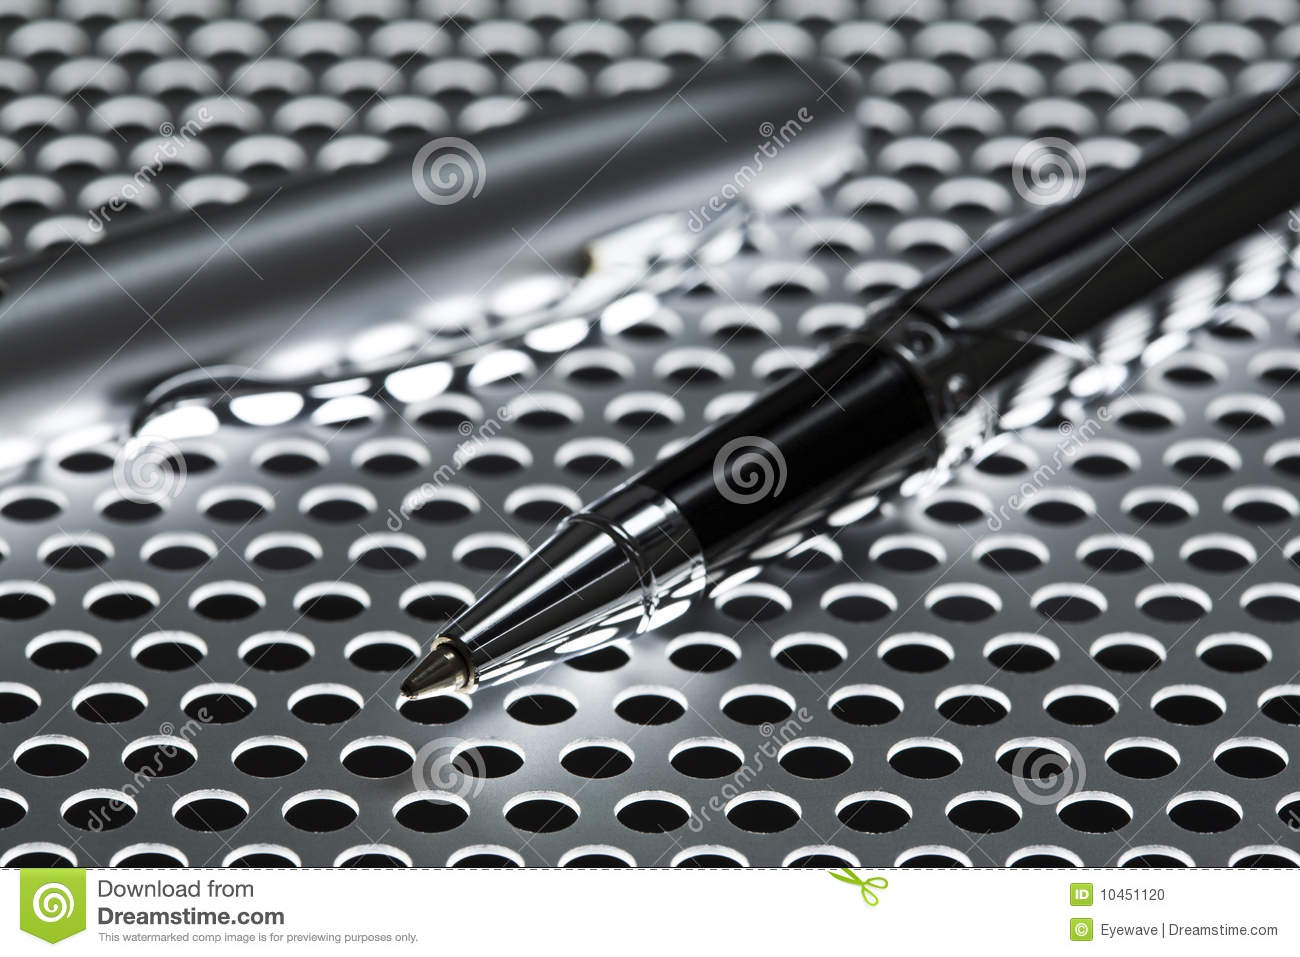 Ballpoint Pen On Perforated Metal Sheet Stock Photo